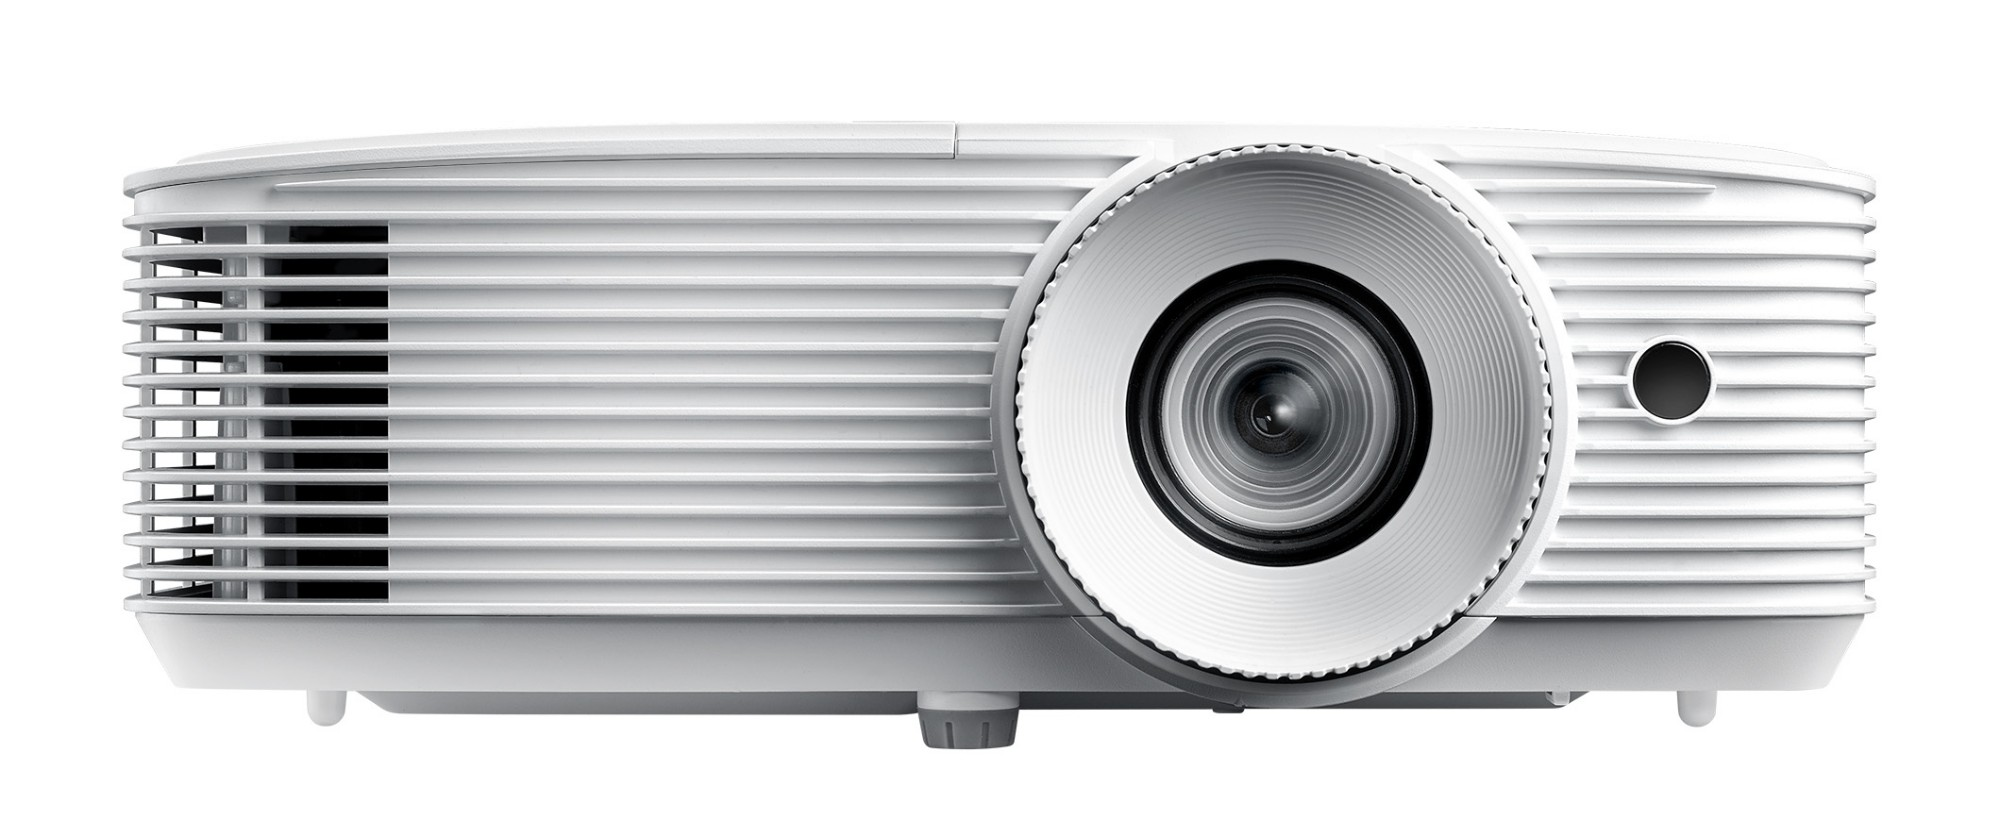 Optoma 3d Optoma Hd27e Data Projector 3400 Ansi Lumens Dlp 1080p 1920x1080 3d Desktop Projector White